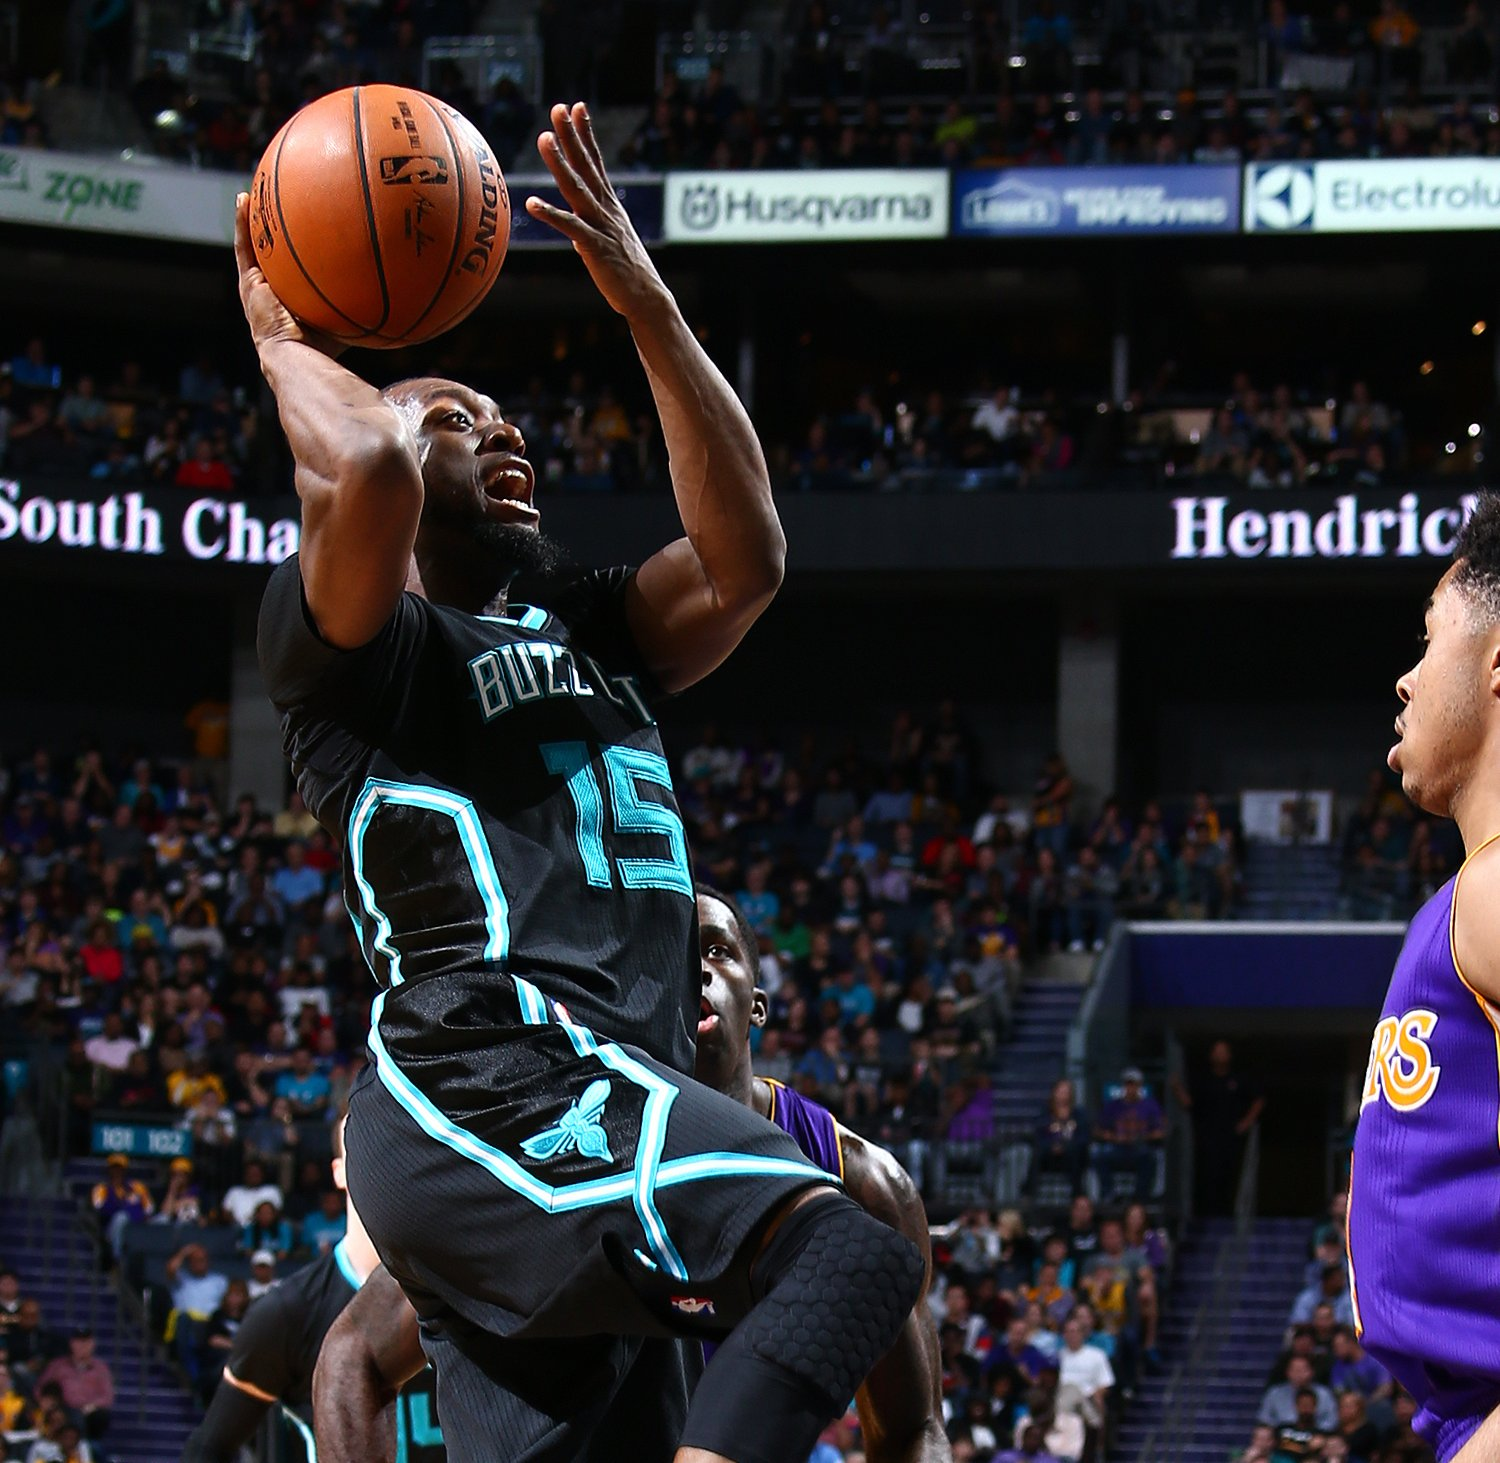 Lakers Vs. Hornets: Score, Video Highlights And Recap From